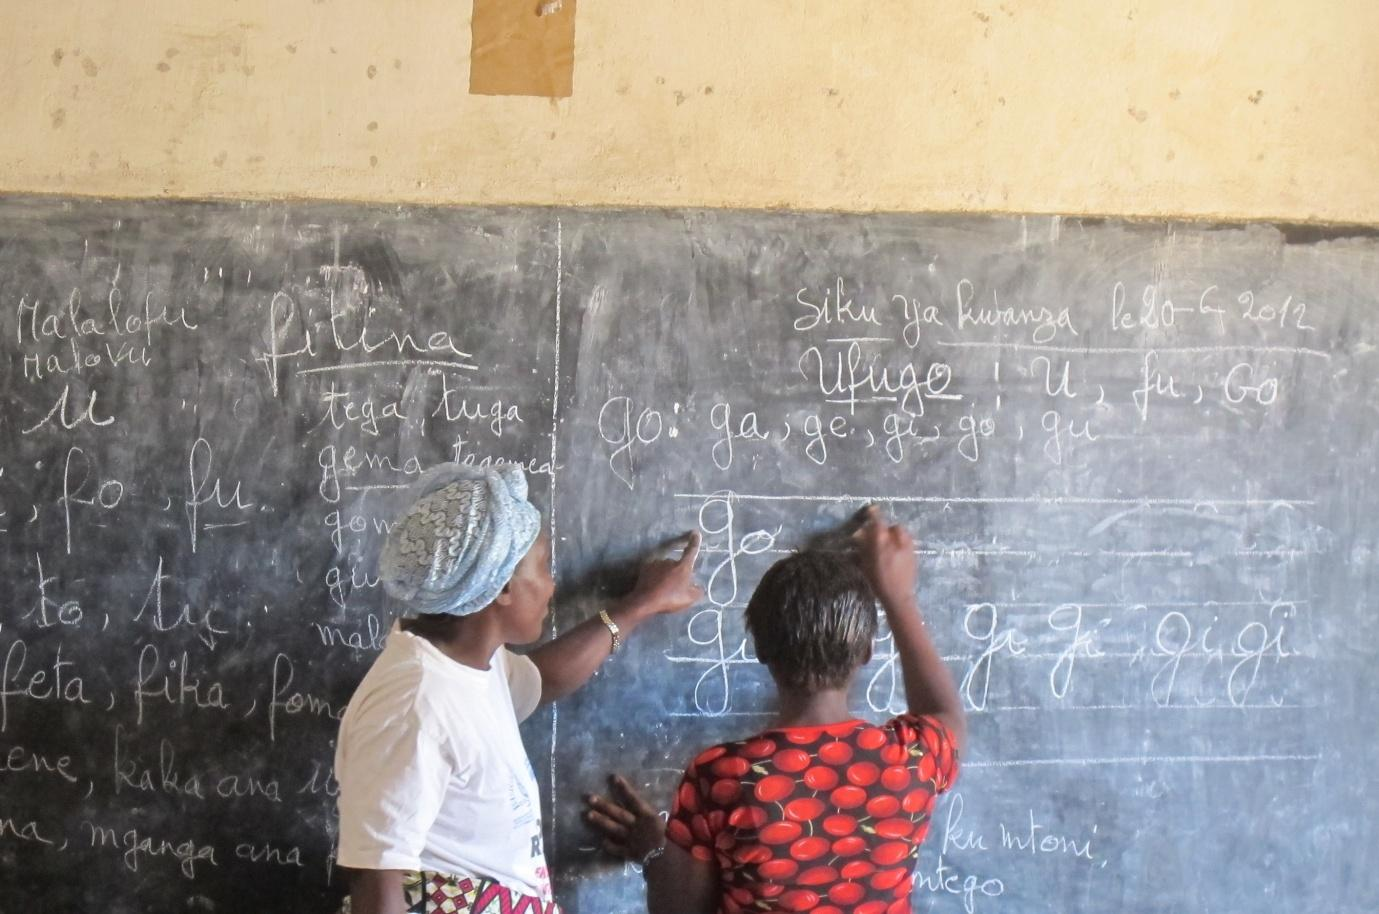 Two individuals write on a chalkboard